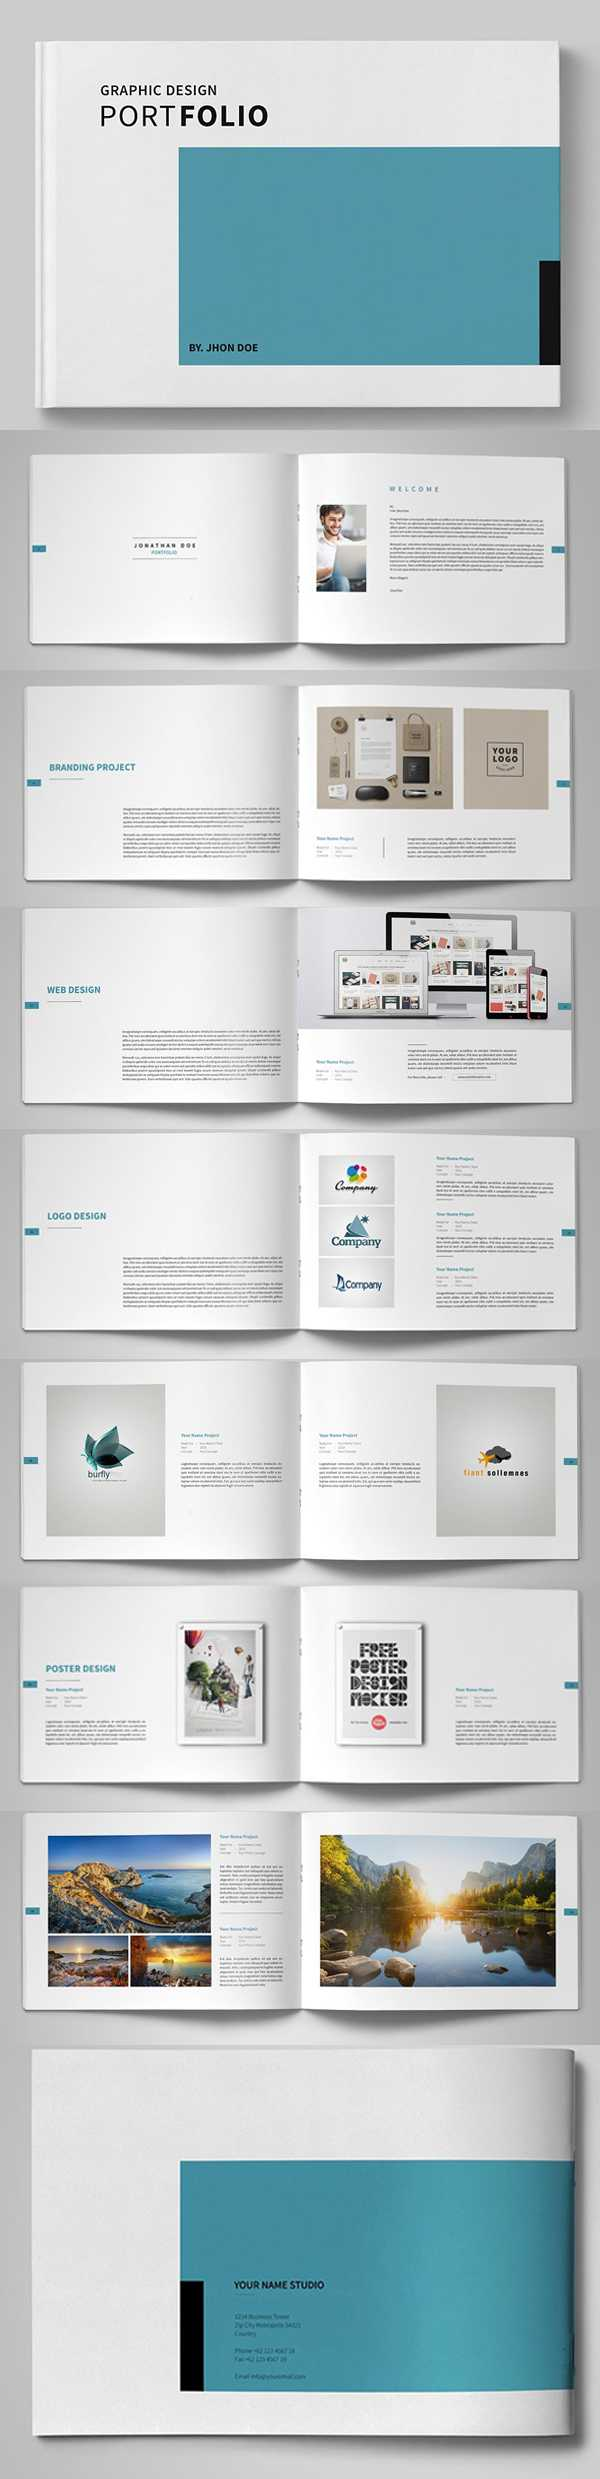 20 New Professional Catalog Brochure Templates | Design Throughout Brochure Templates Free Download Indesign